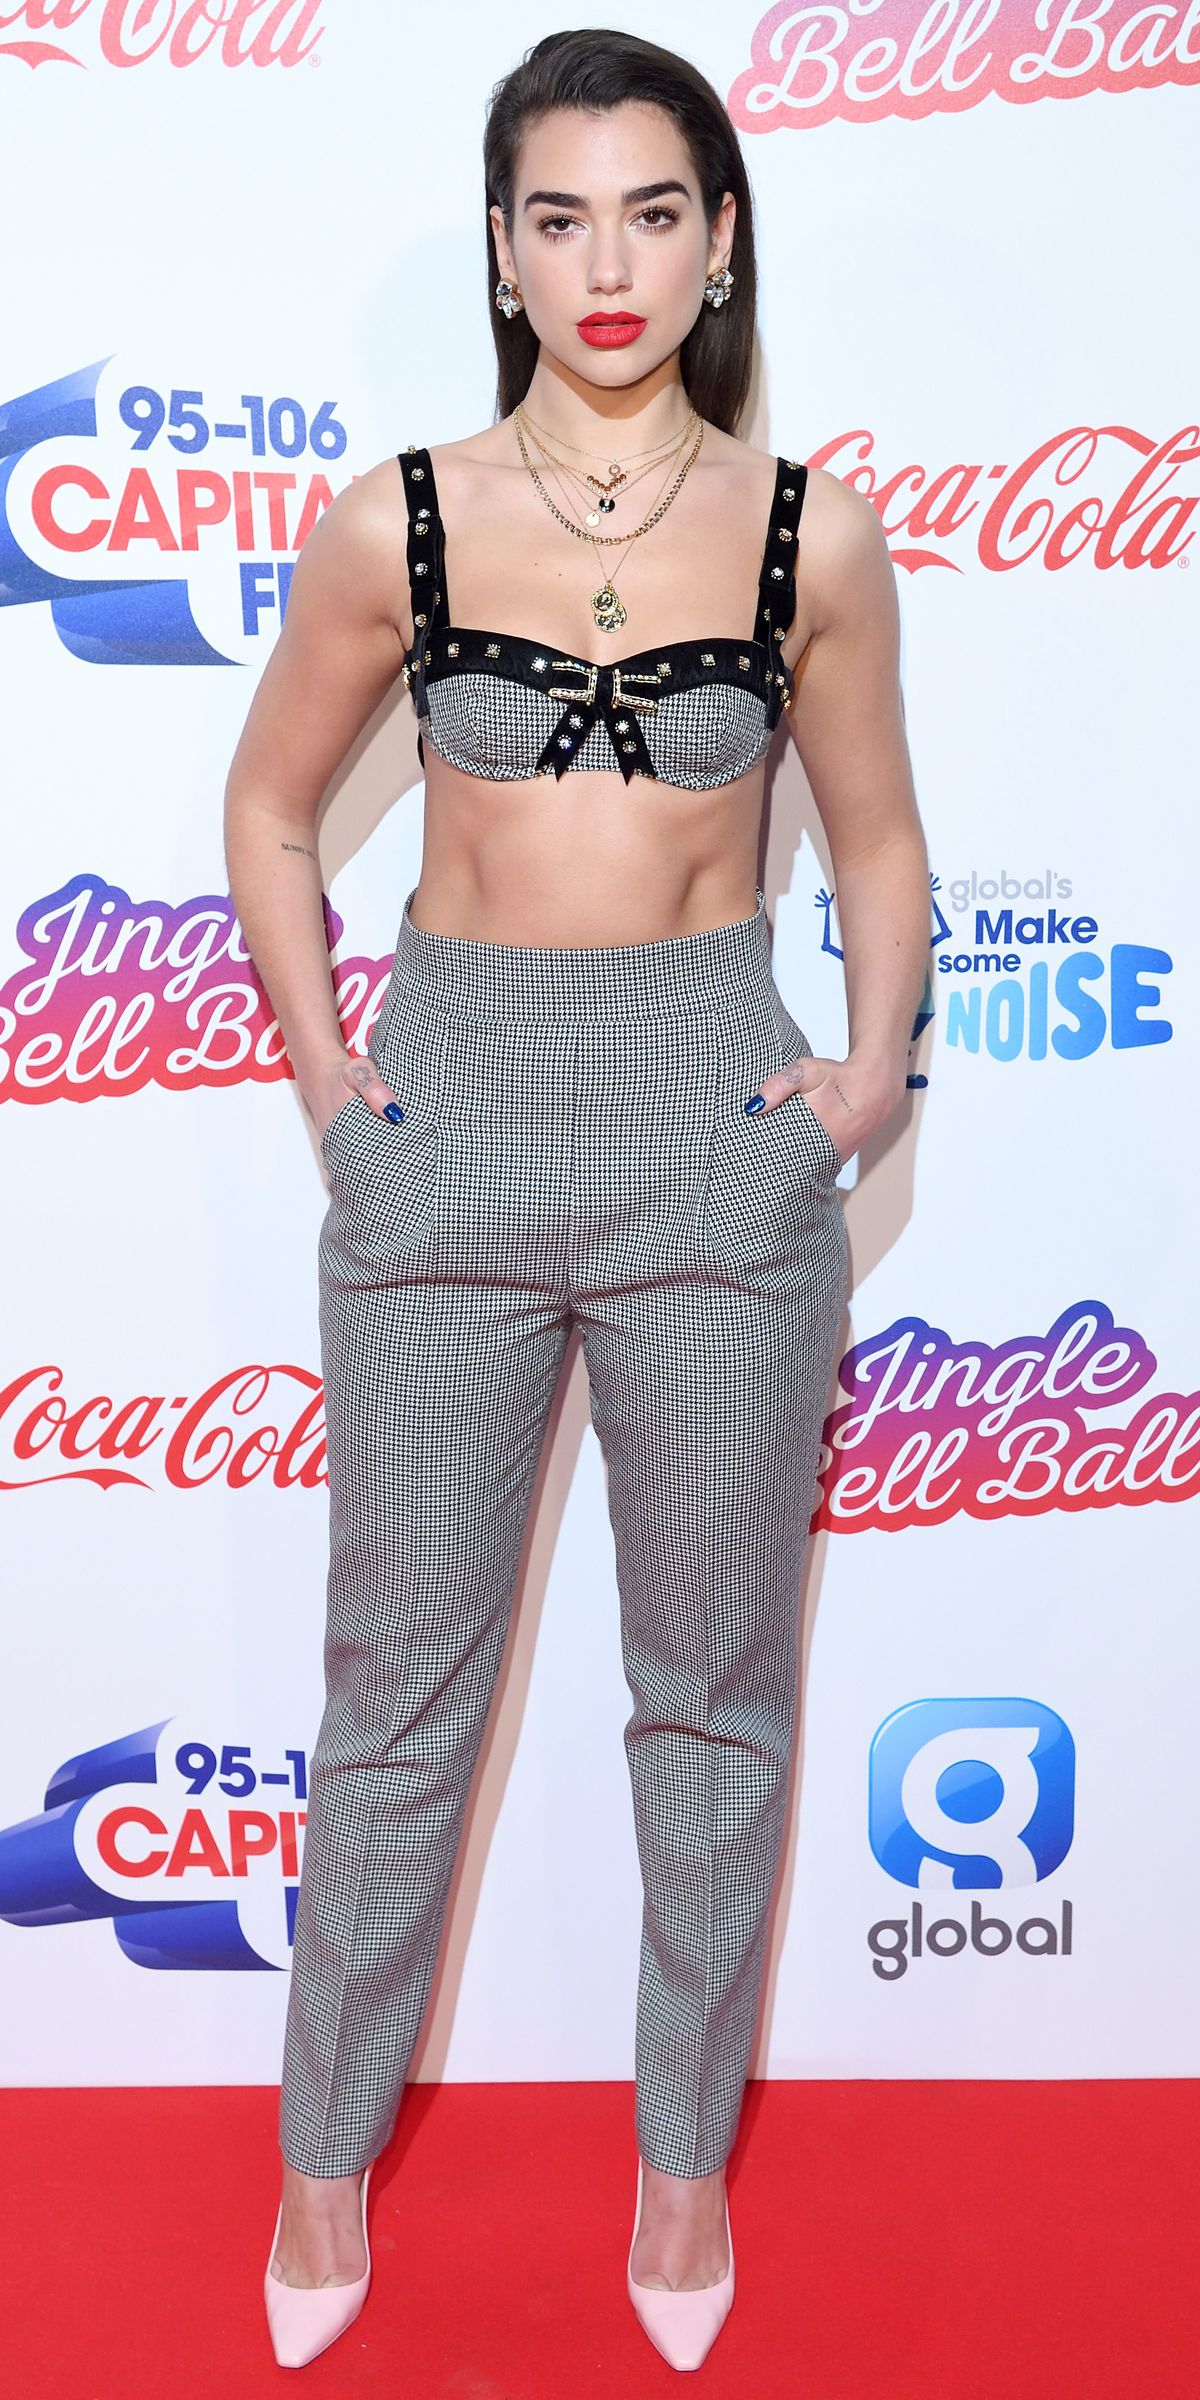 At the Jingle Bell Ball in London, British singer Dua Lipa put a feminine twist on menswear dressing with a velvet-trimmed bralette by Philosophy Di Lorenzo Serafini. We're freaking out because those classic pants are 50 percent off at Farfetch right now.